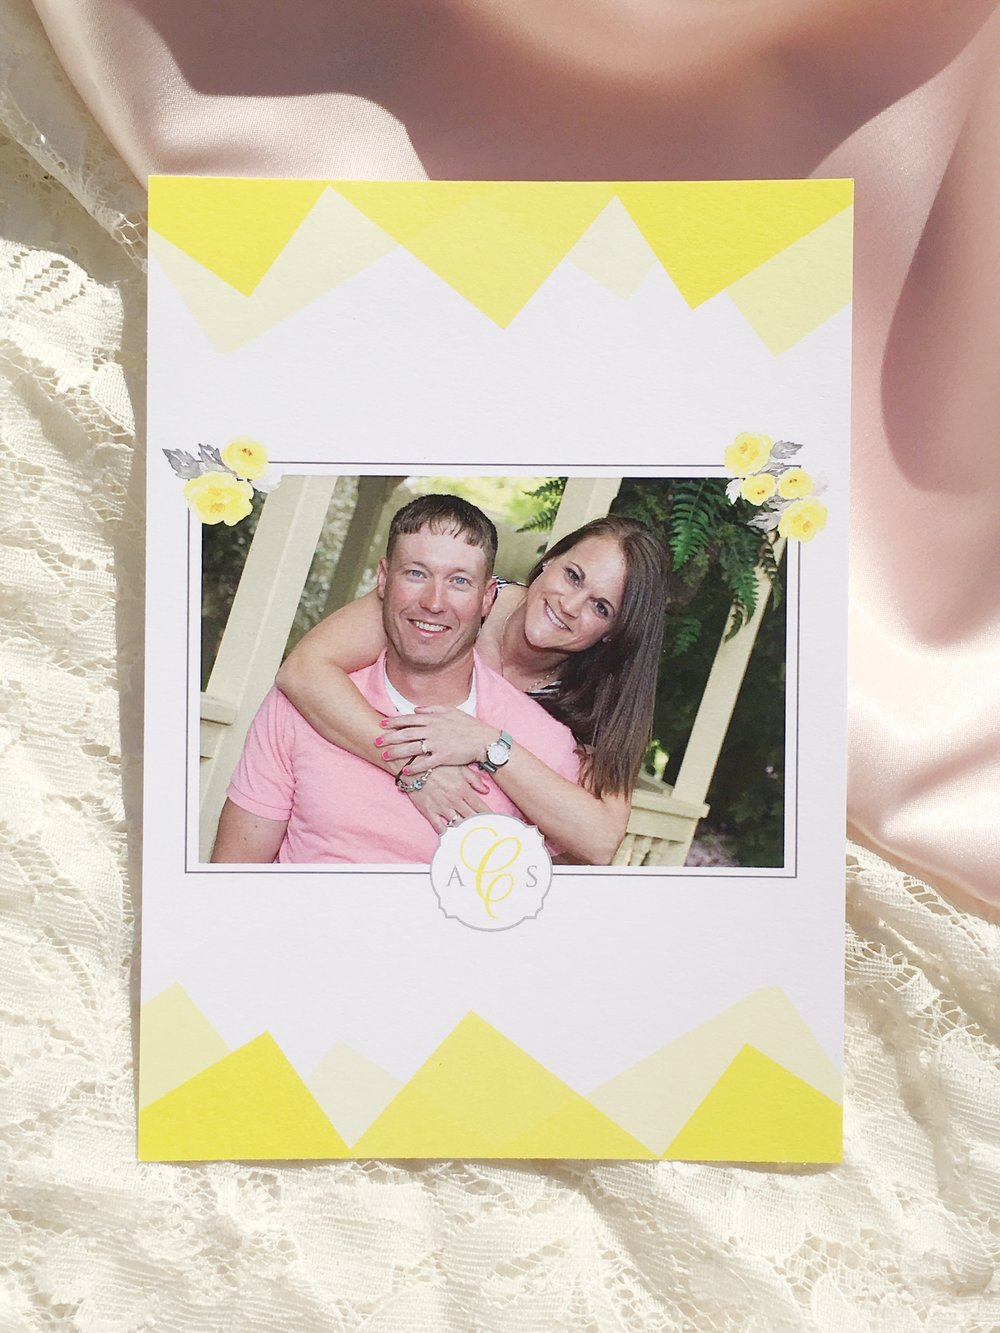 Central PA, York PA, JesSmith Designs, custom, wedding, invitations, bridal, announcements, save the date, baby, hanover, calligraphy, baltimore, wedding invitations, lancaster, gettysburg-06-29 09.03.02.jpg